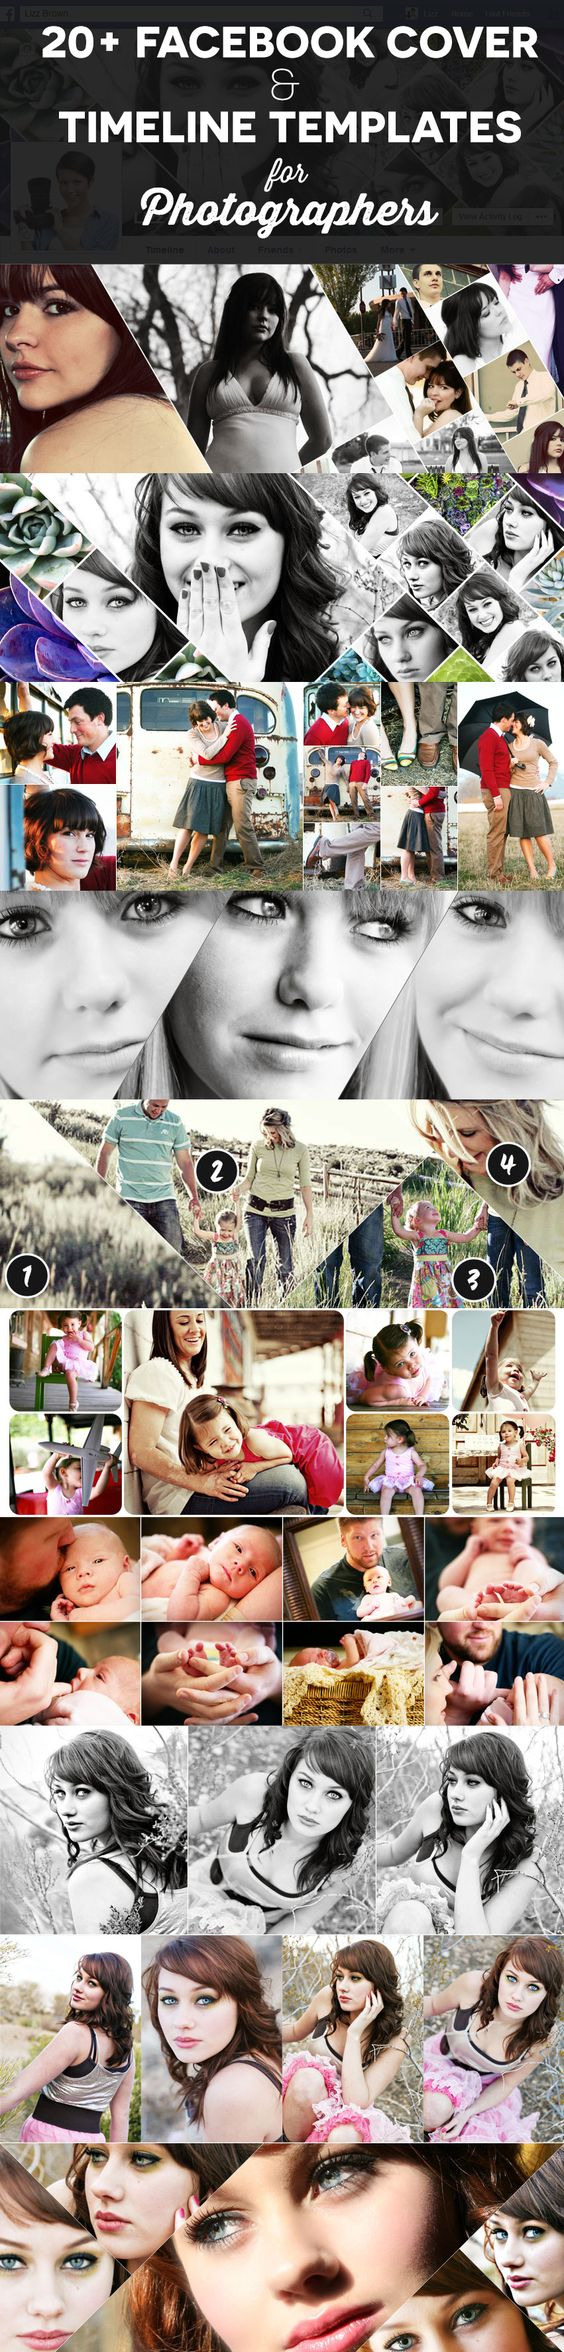 Facebook Cover Photo Collage ~ Photo collage template and timeline